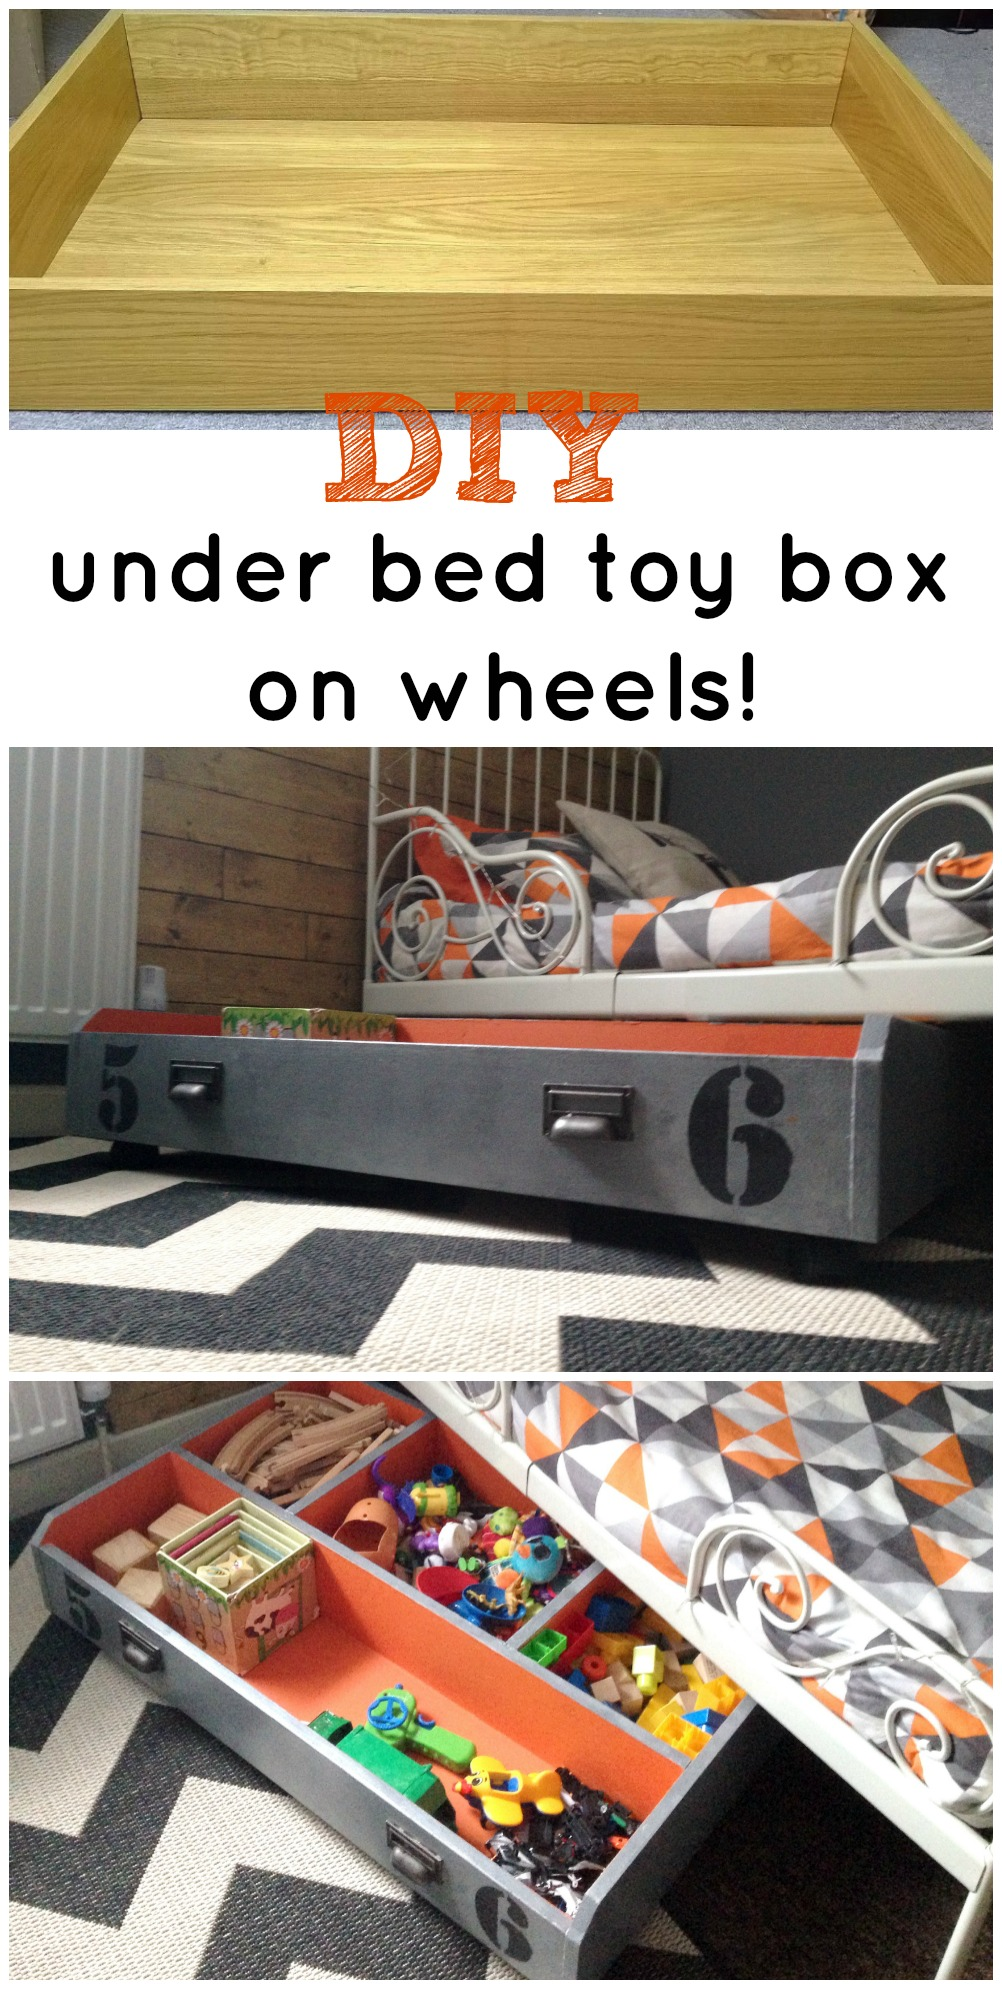 diy under bed toy box